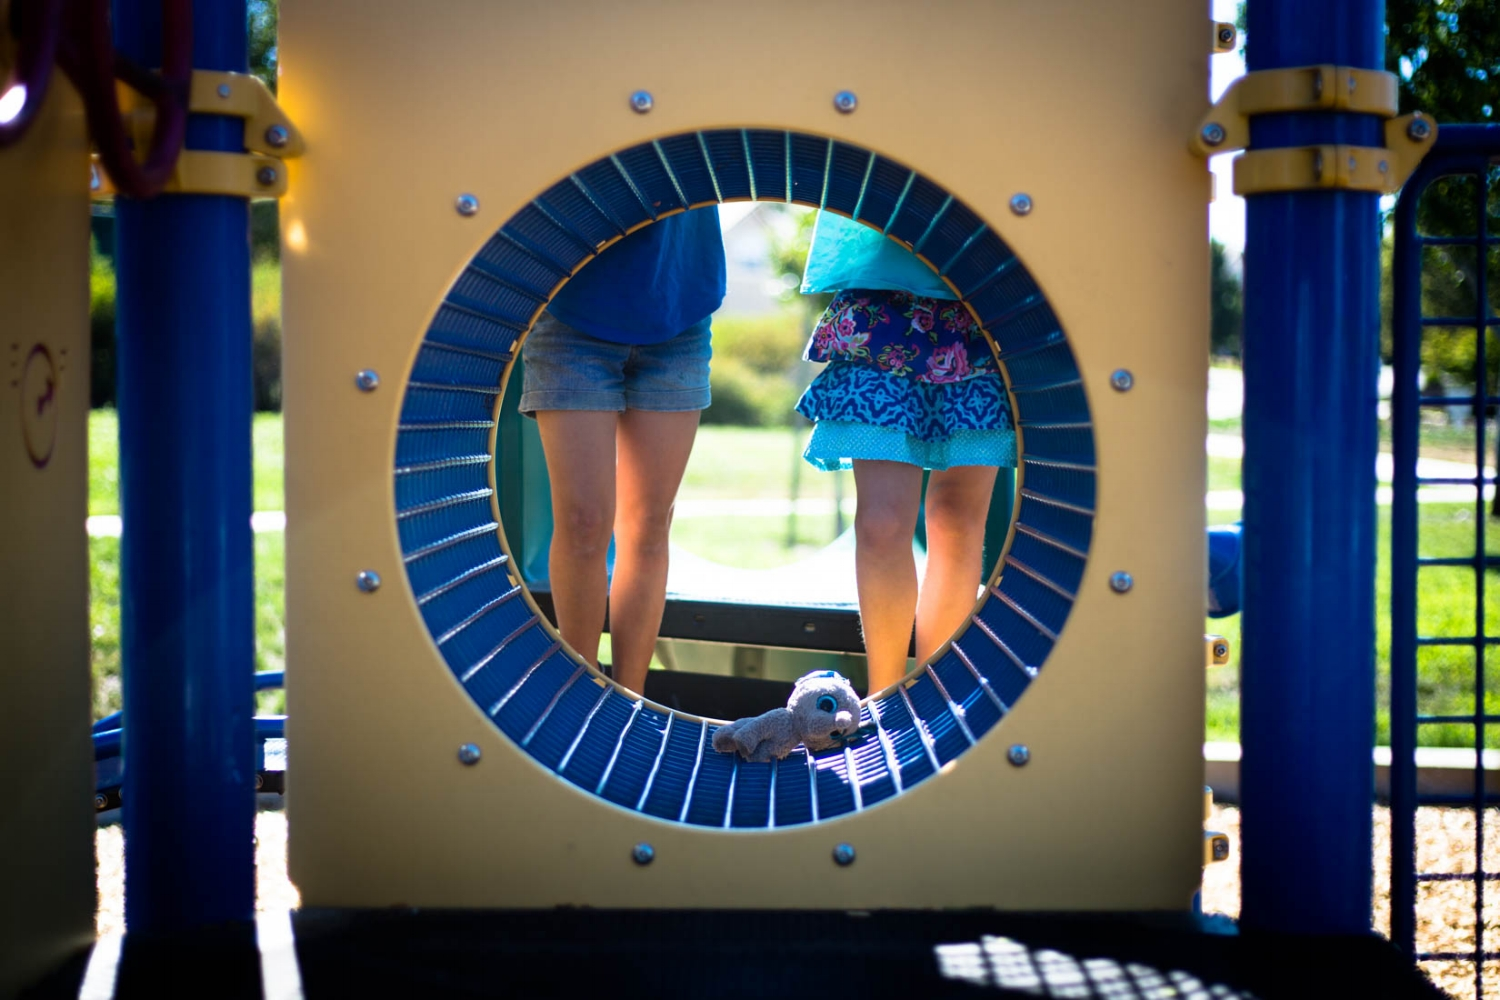 two girls standing behind the tunnel at the park with their stuffed animal wearing bright colorful clothes